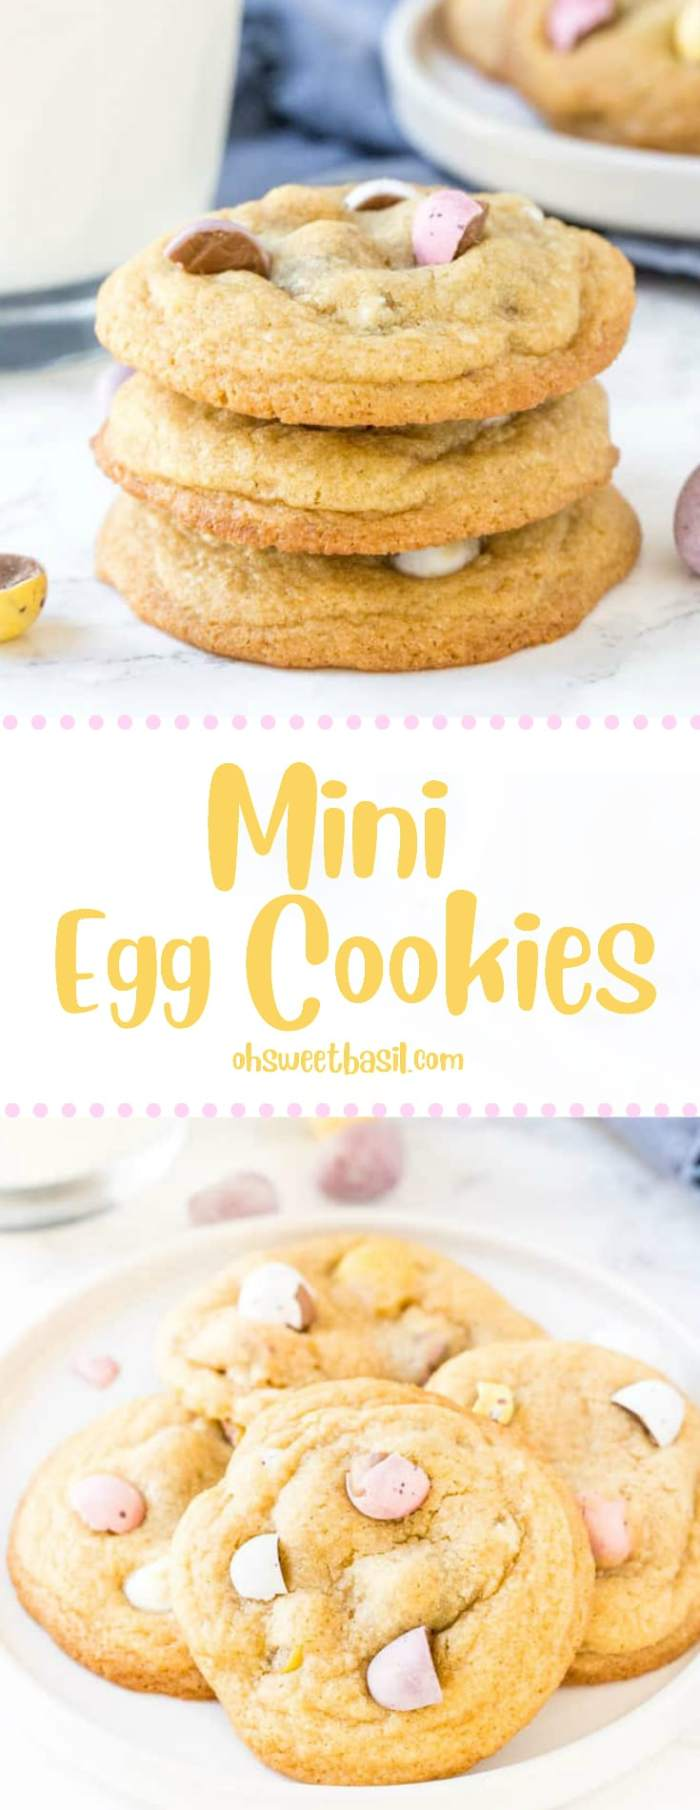 A plate of soft and chewy mini egg cookies that are perfect for Easter.